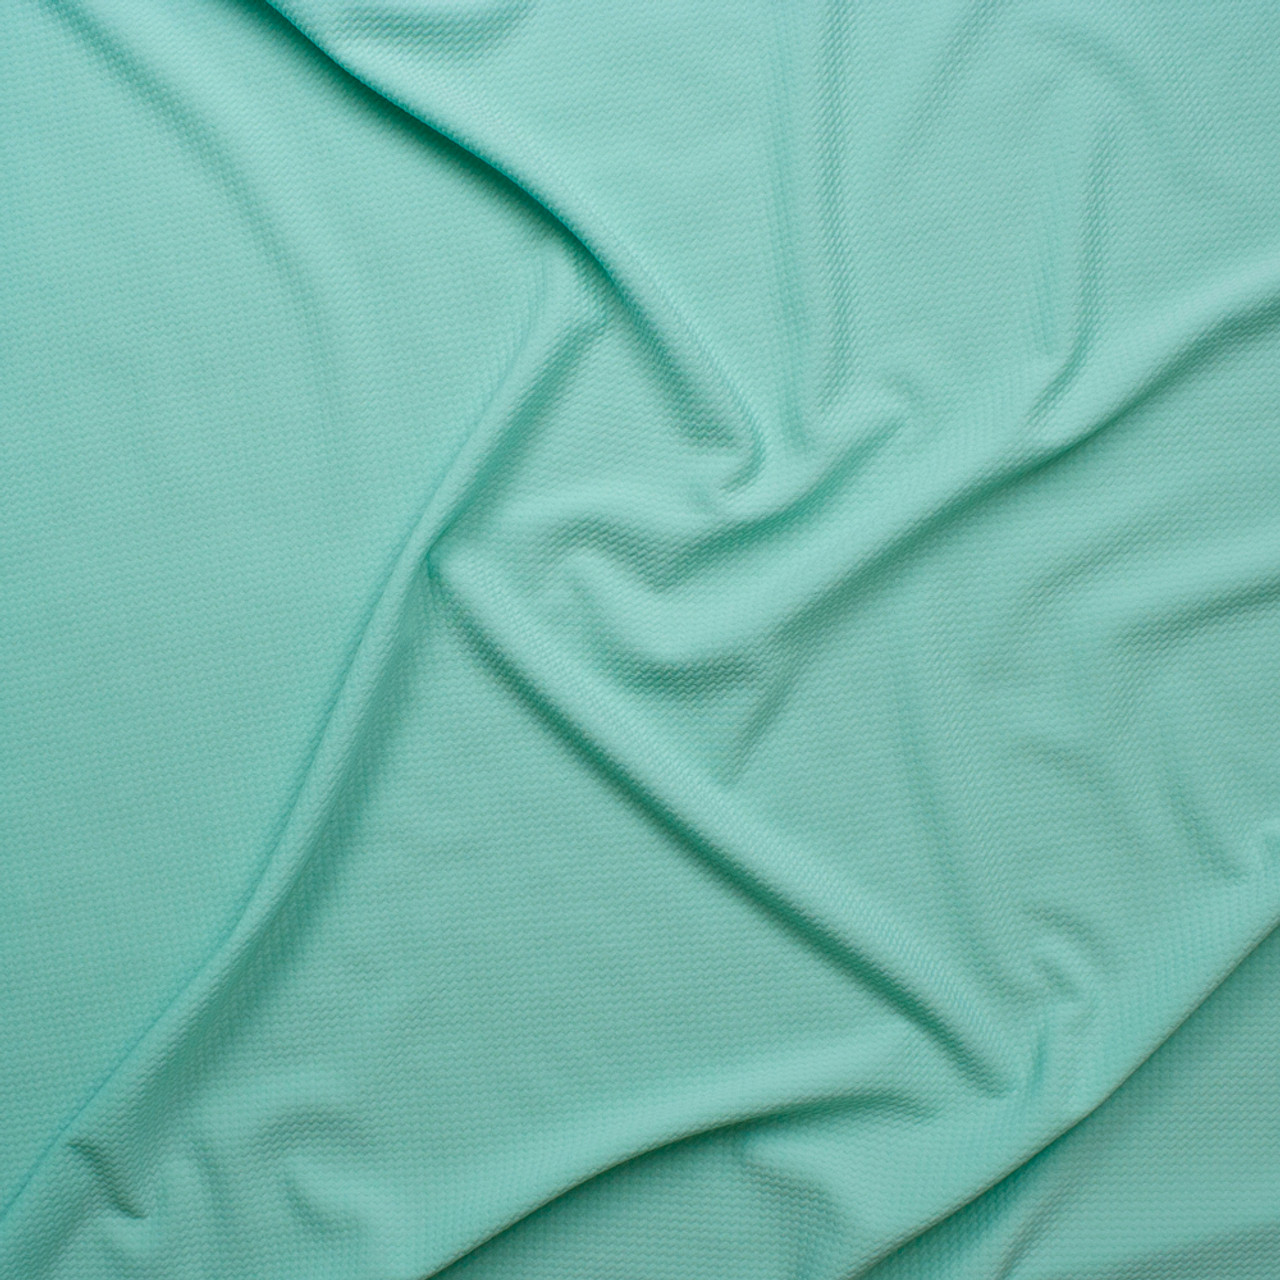 1dfbc4d512 ... Solid Mint Green Bullet Texture Liverpool Knit Fabric By The Yard -  Wide shot